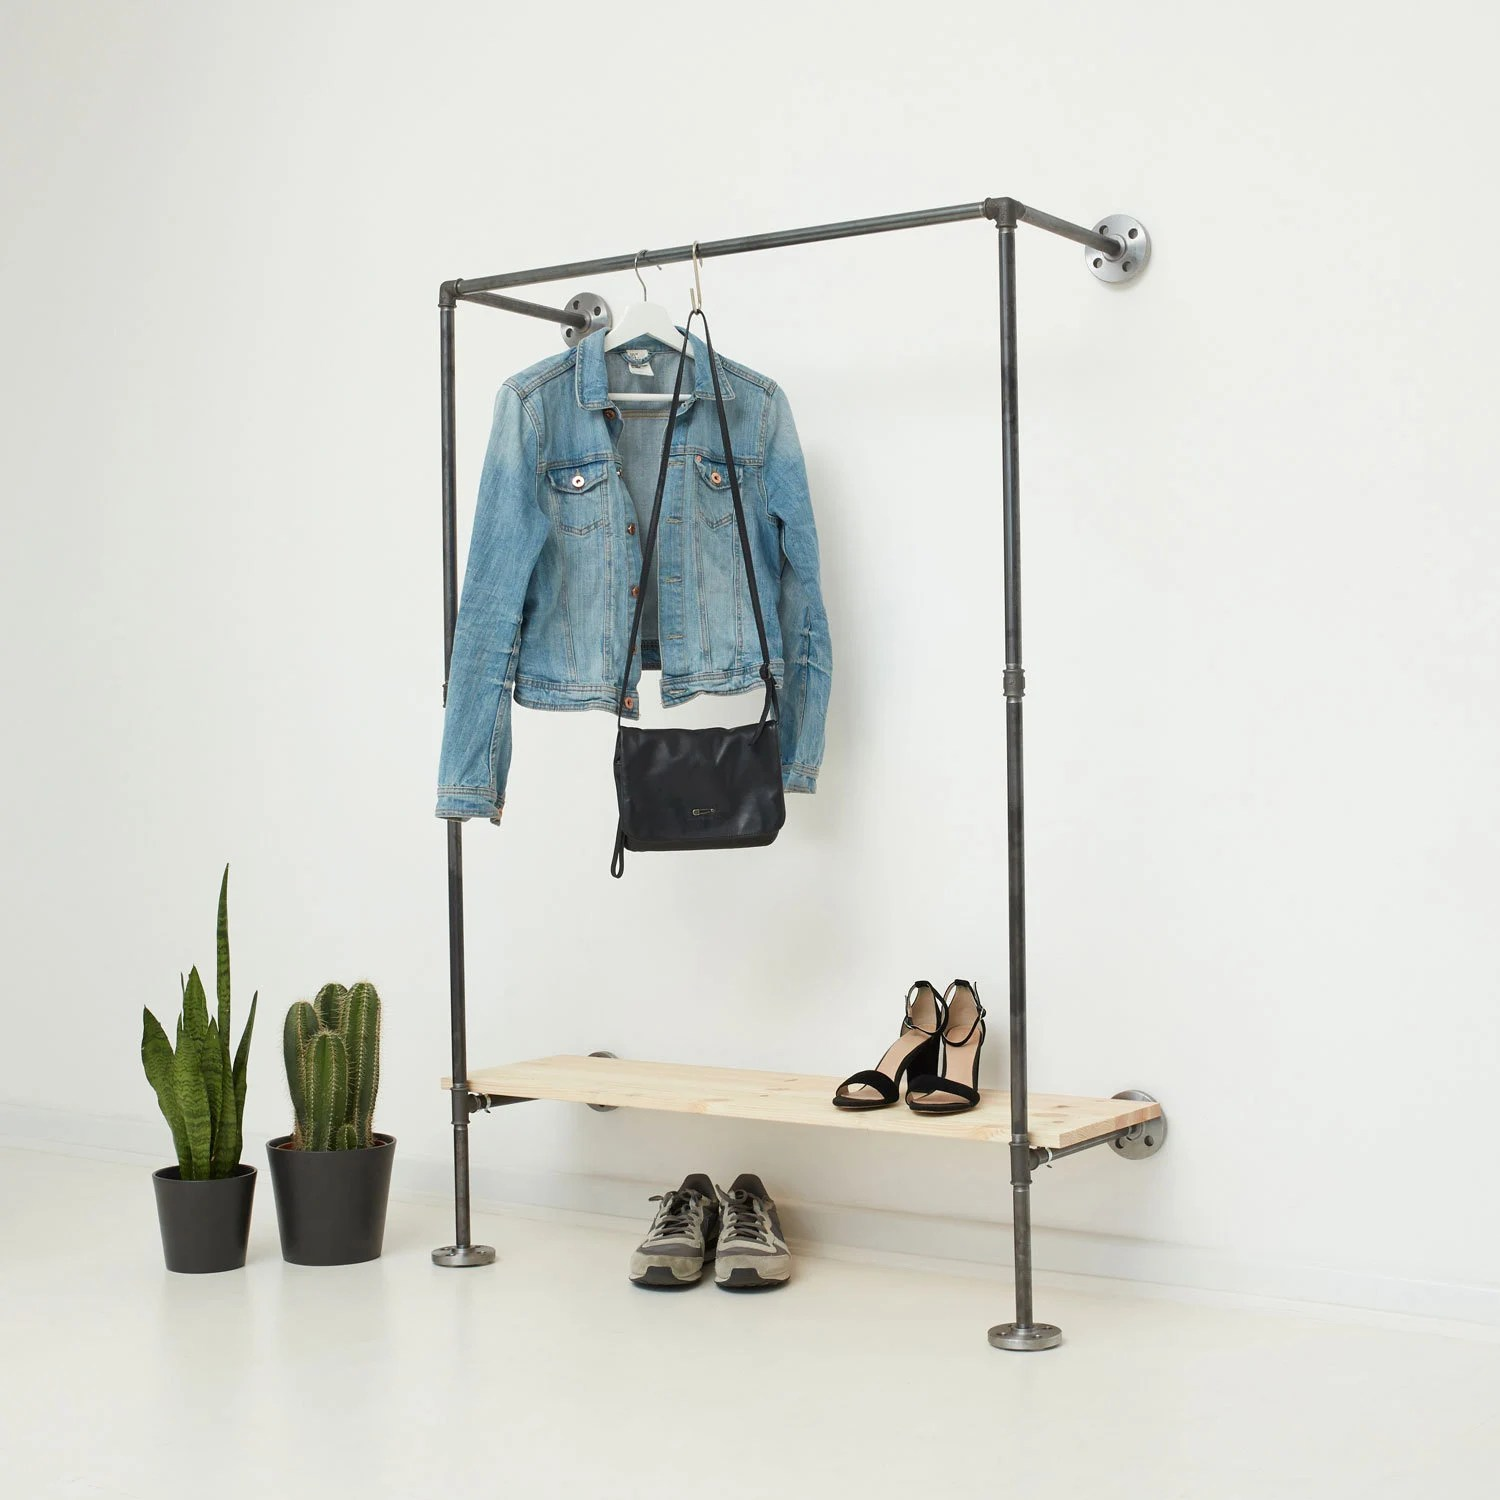 Garderobe Industrial Design Customizable Open Wardrobe Industrial Design Steel Pipe Clothes Rack Industrial Clothing Rail Ideal One Anthracite Galvanized